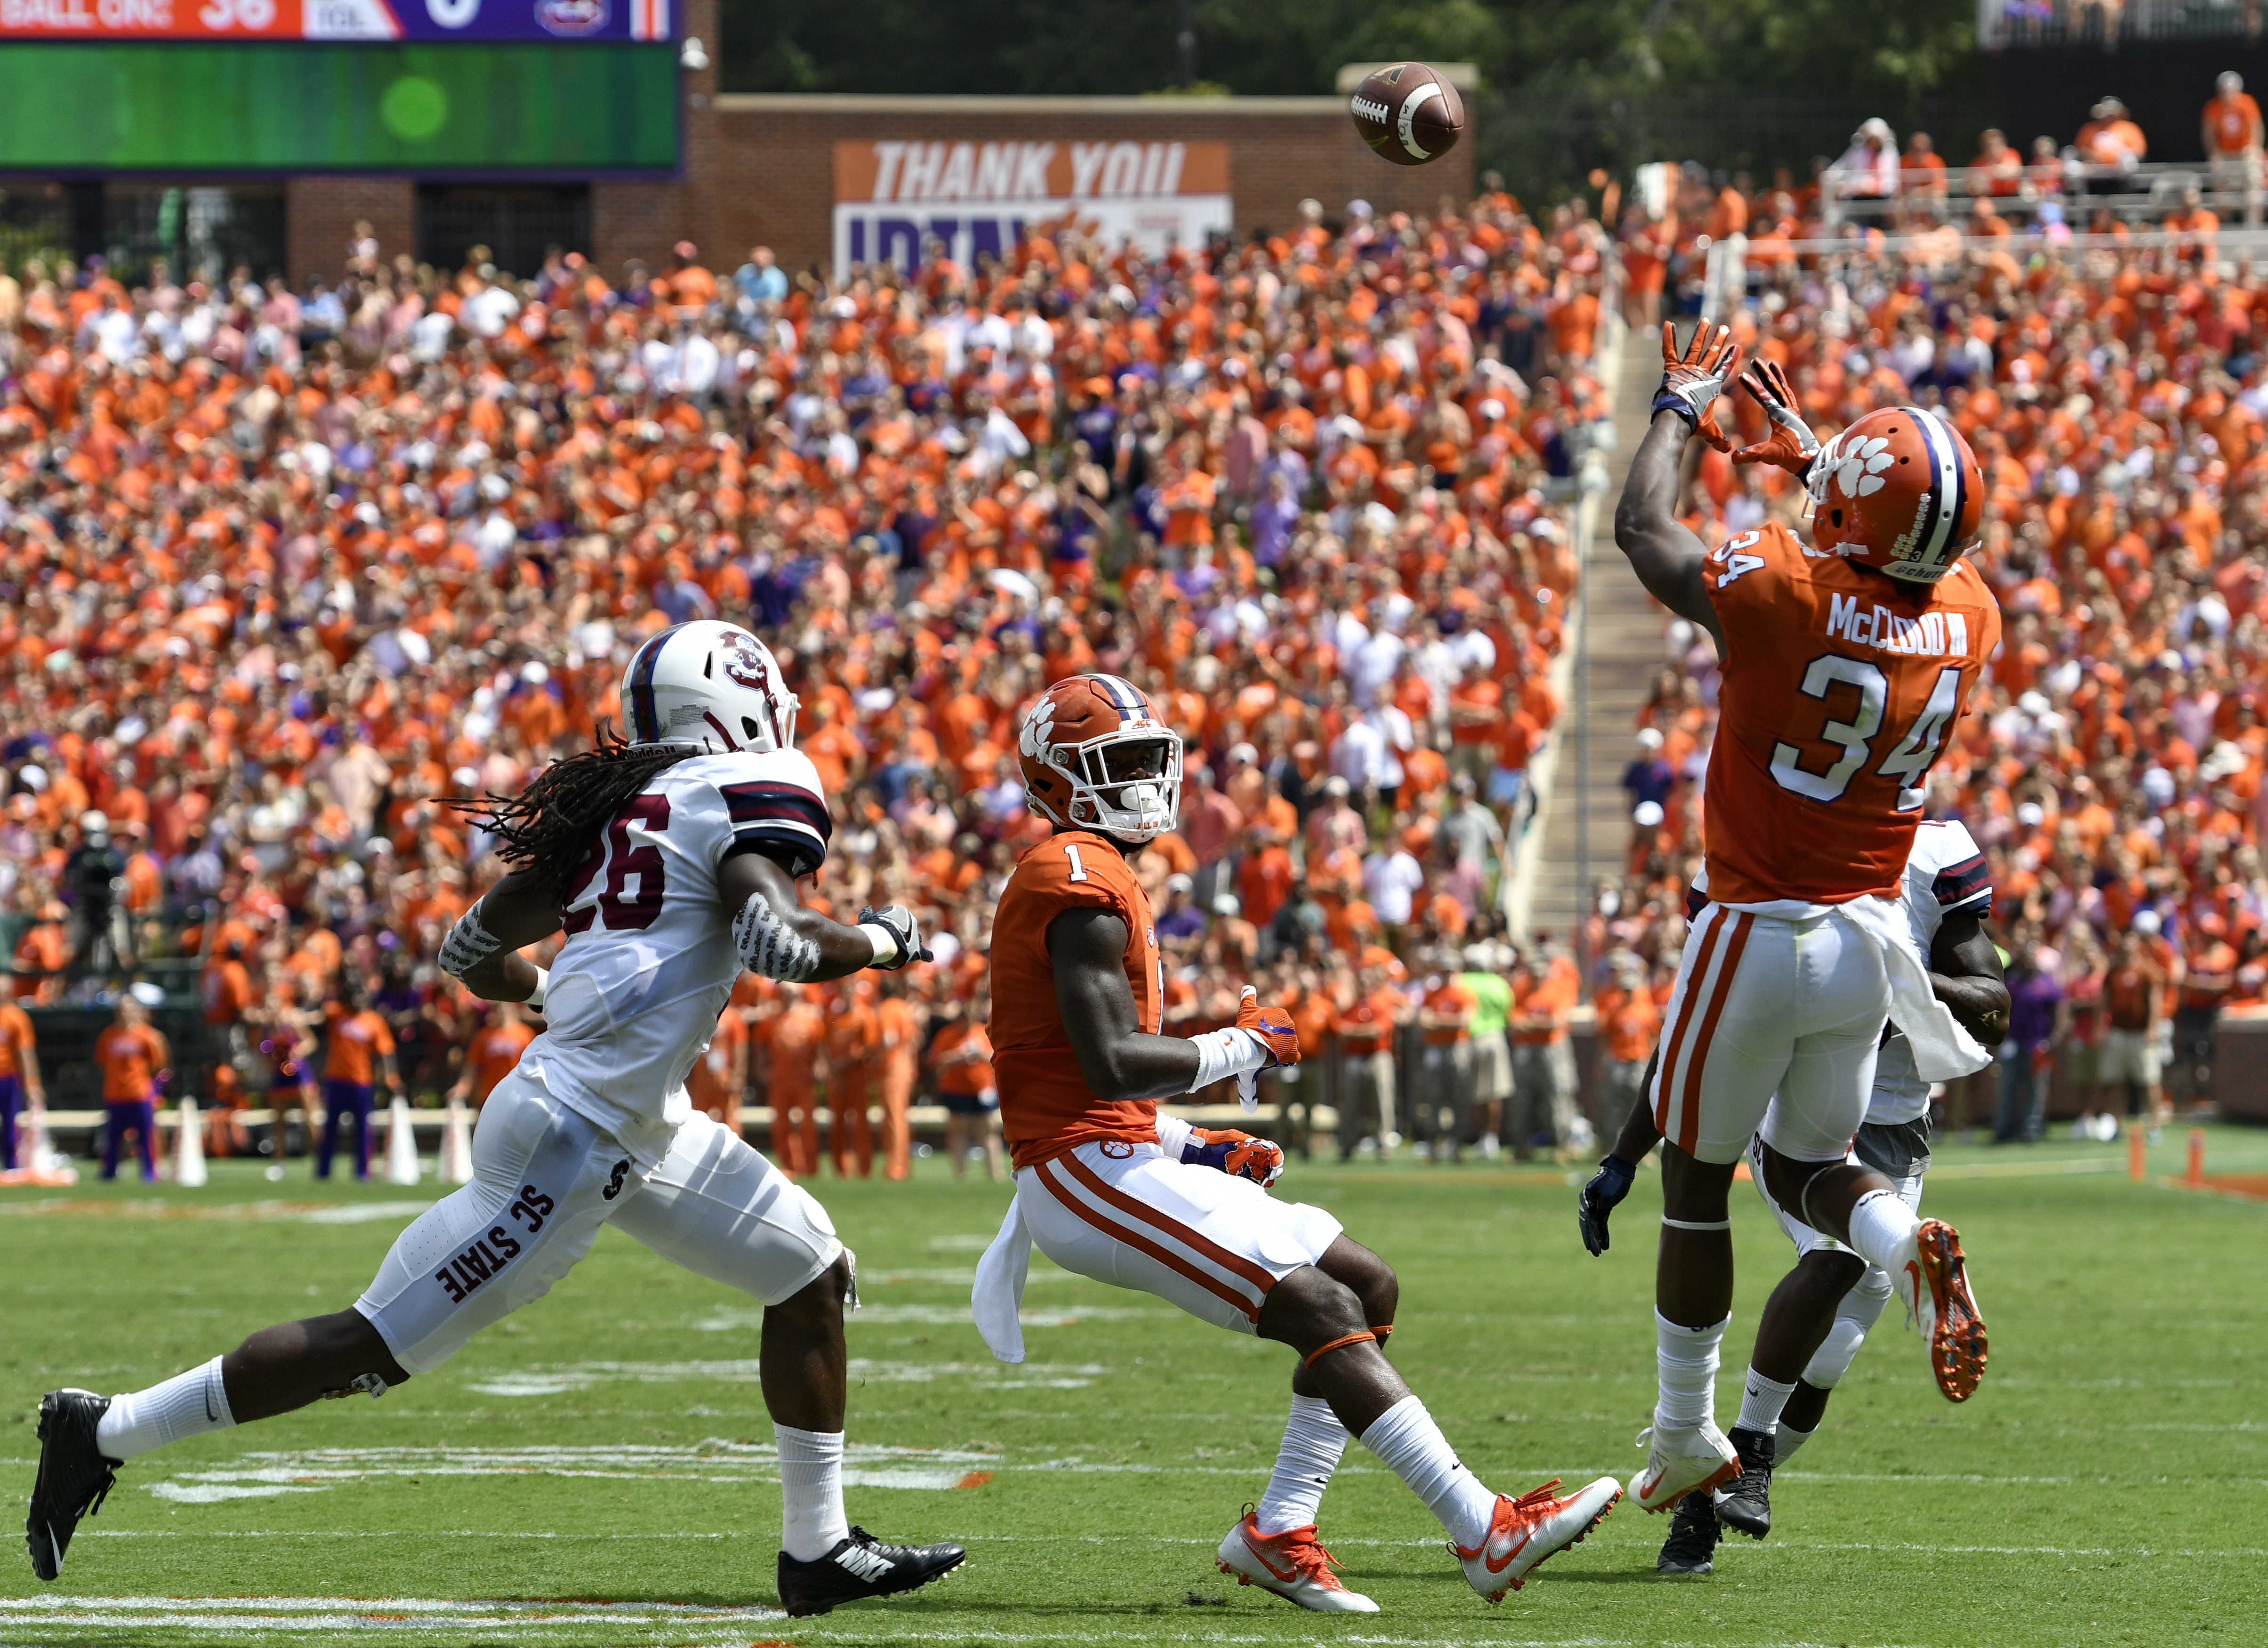 Clemson's Ray-Ray McCloud (34) pulls in a pass for a touchdown while covered by South Carolina State's Jason Baxter (26) and Clemson's Trevion Thompson watches during the first half of an NCAA college football game Saturday, Sept. 17, 2016, in Clemson, S.